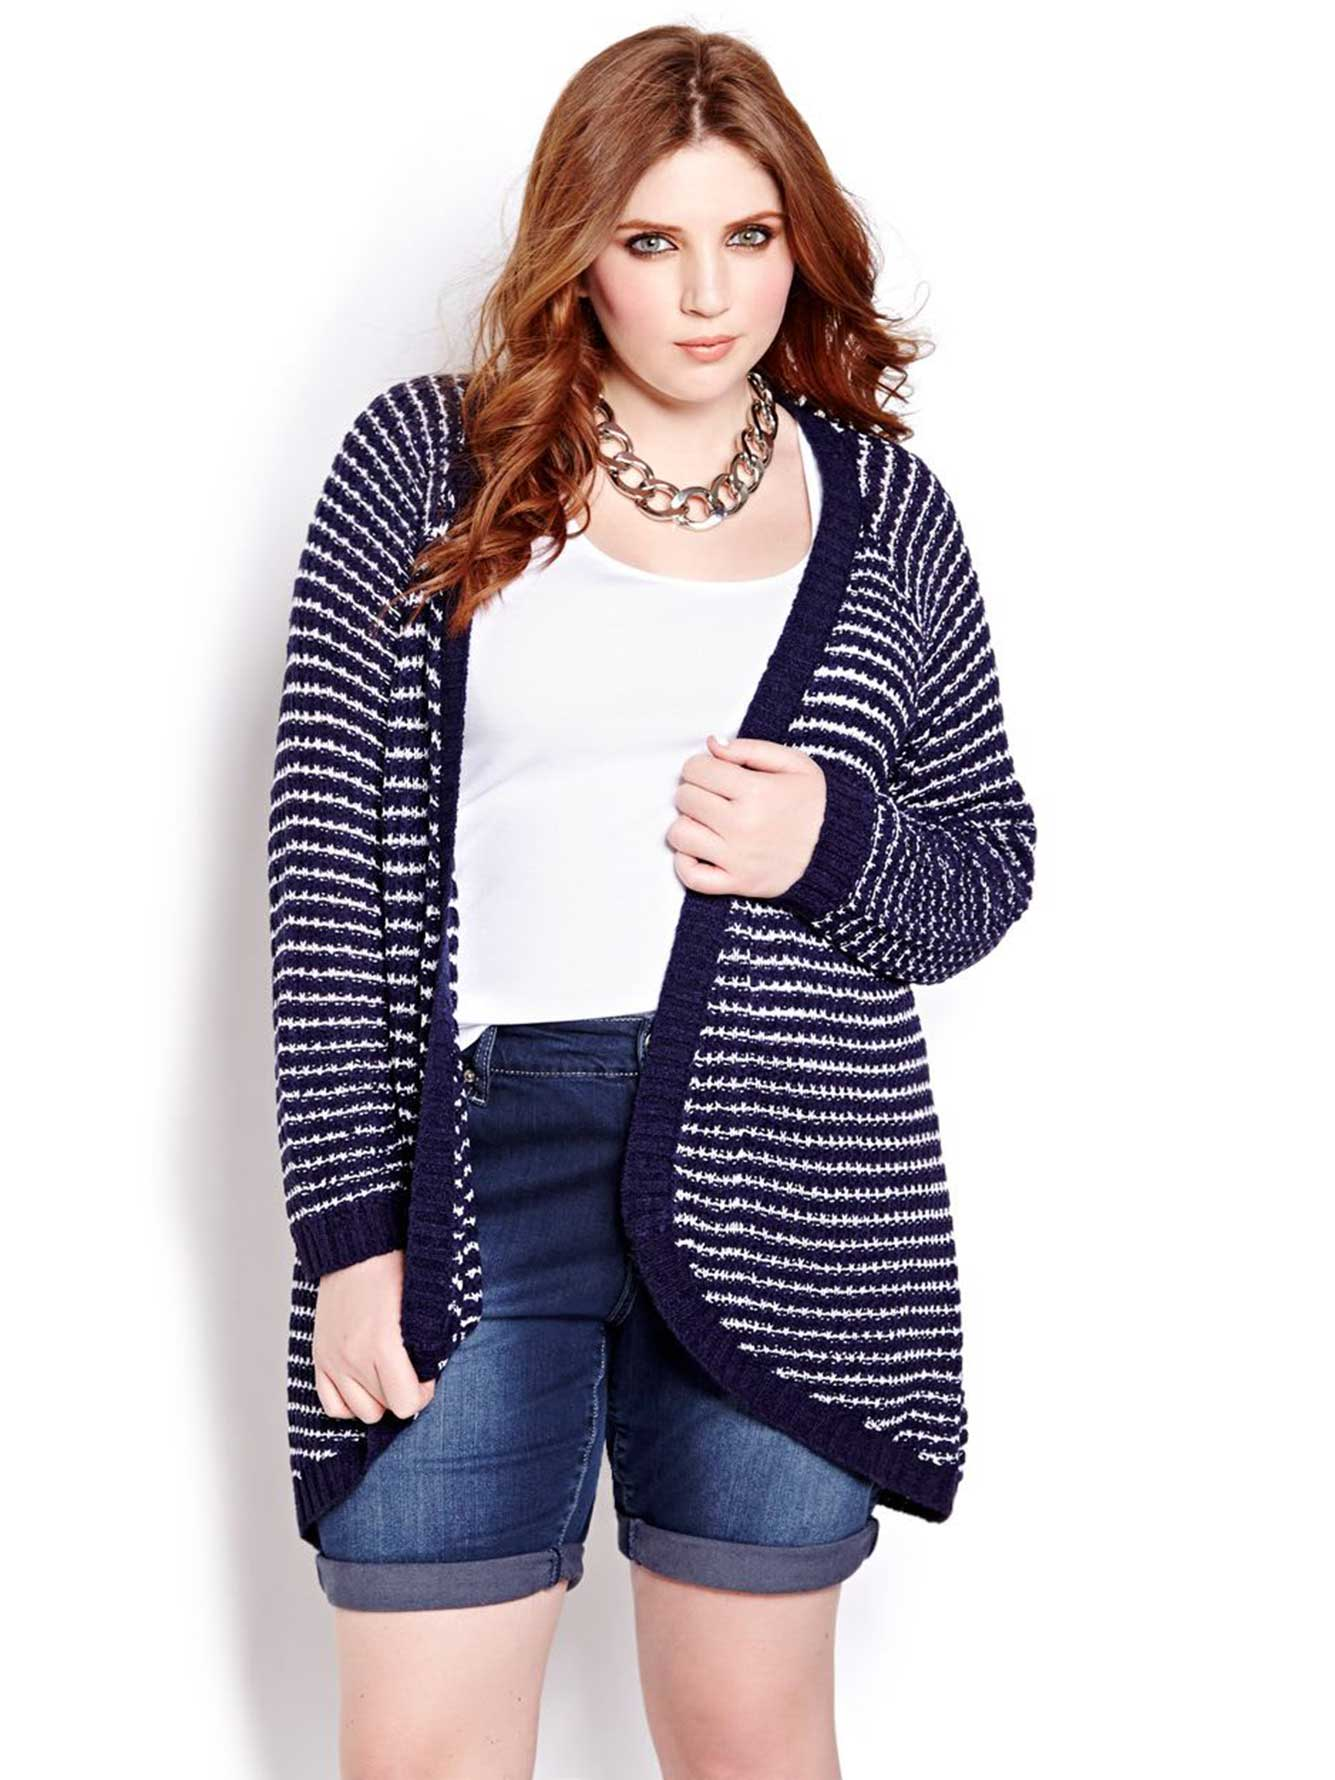 From Cardigans and Crew Neck Sweaters to V-Neck and Off The Shoulder Sweaters, you'll be ready for the cold weather in our soft and cozy Sweaters & Cardigans for Women at American Eagle.